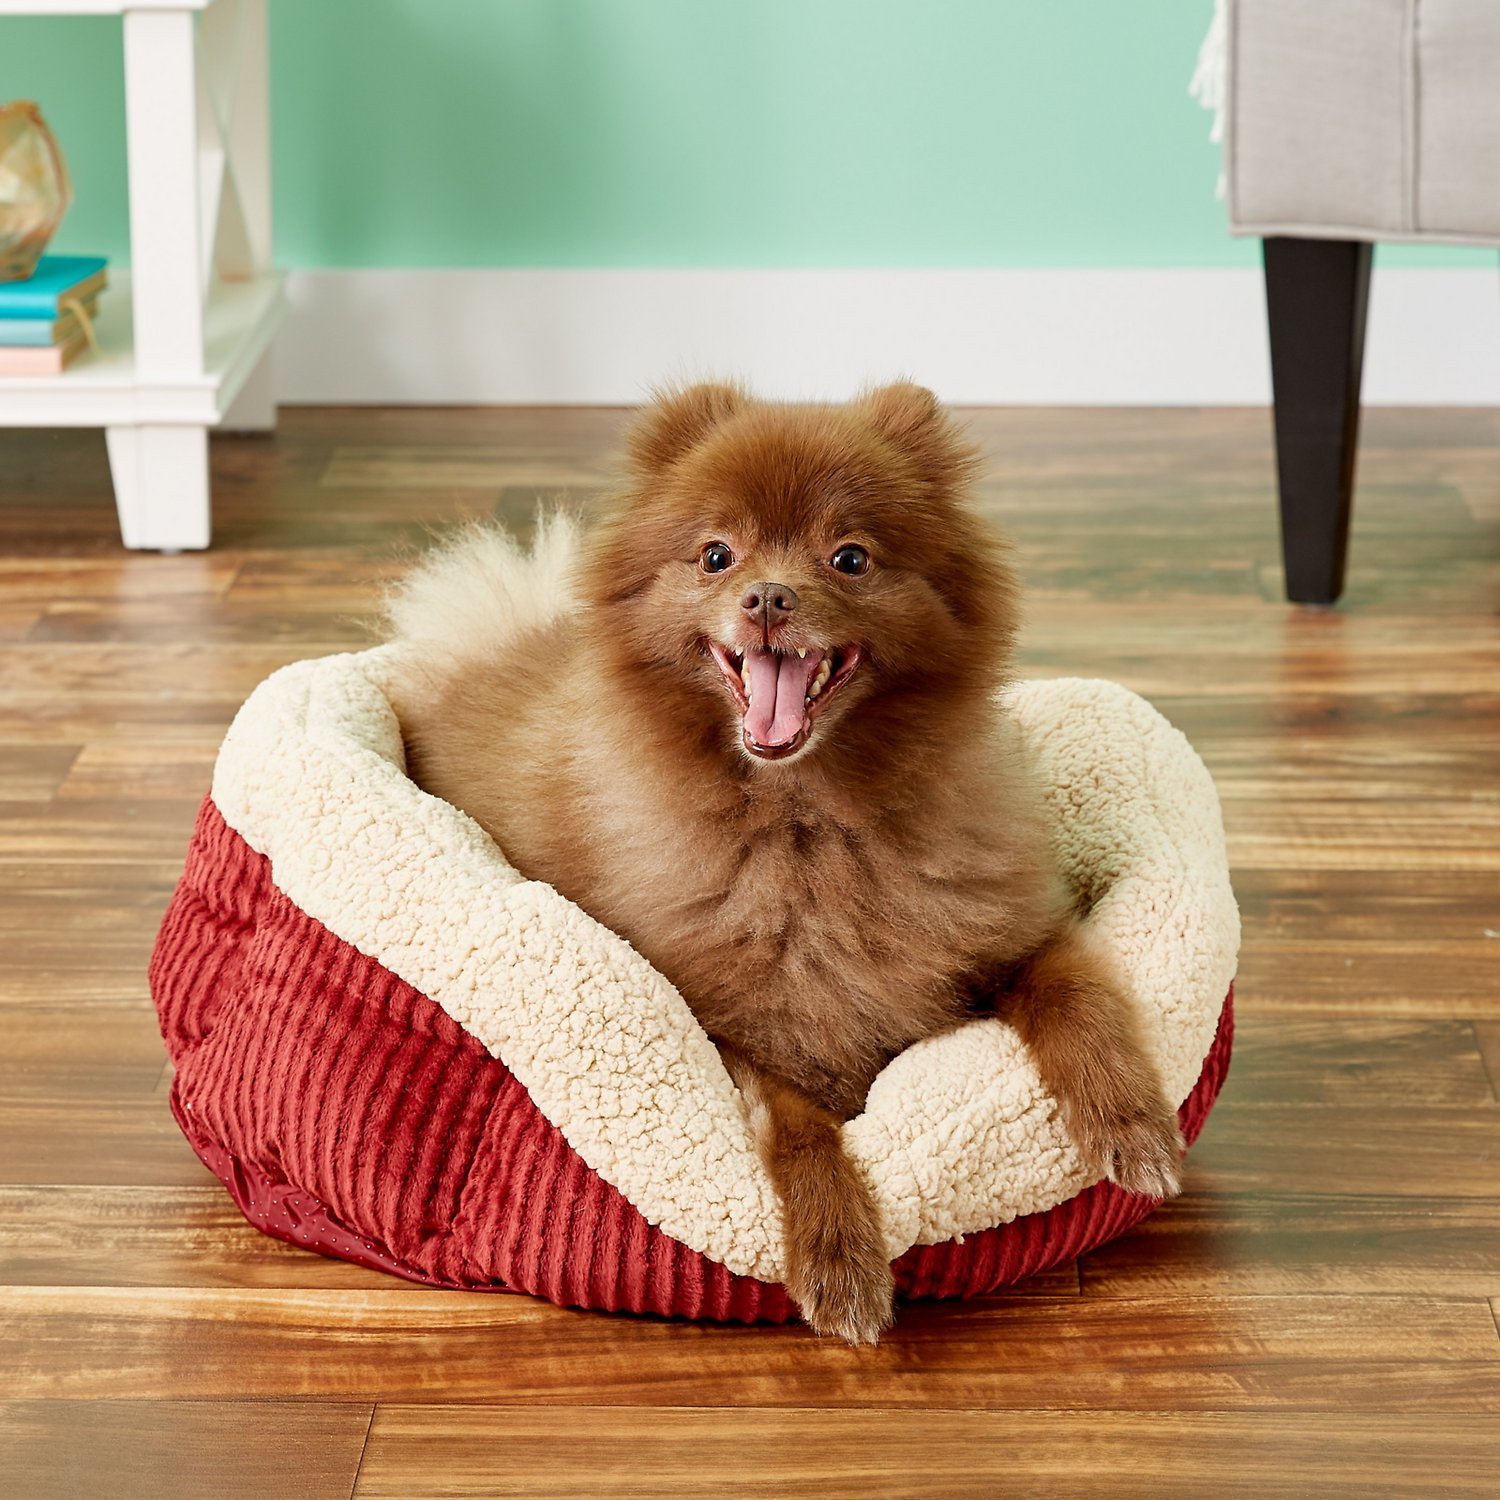 13 Great Dog Beds For Small Dogs Best Of 2020 Home Made From The Finest Of Internets